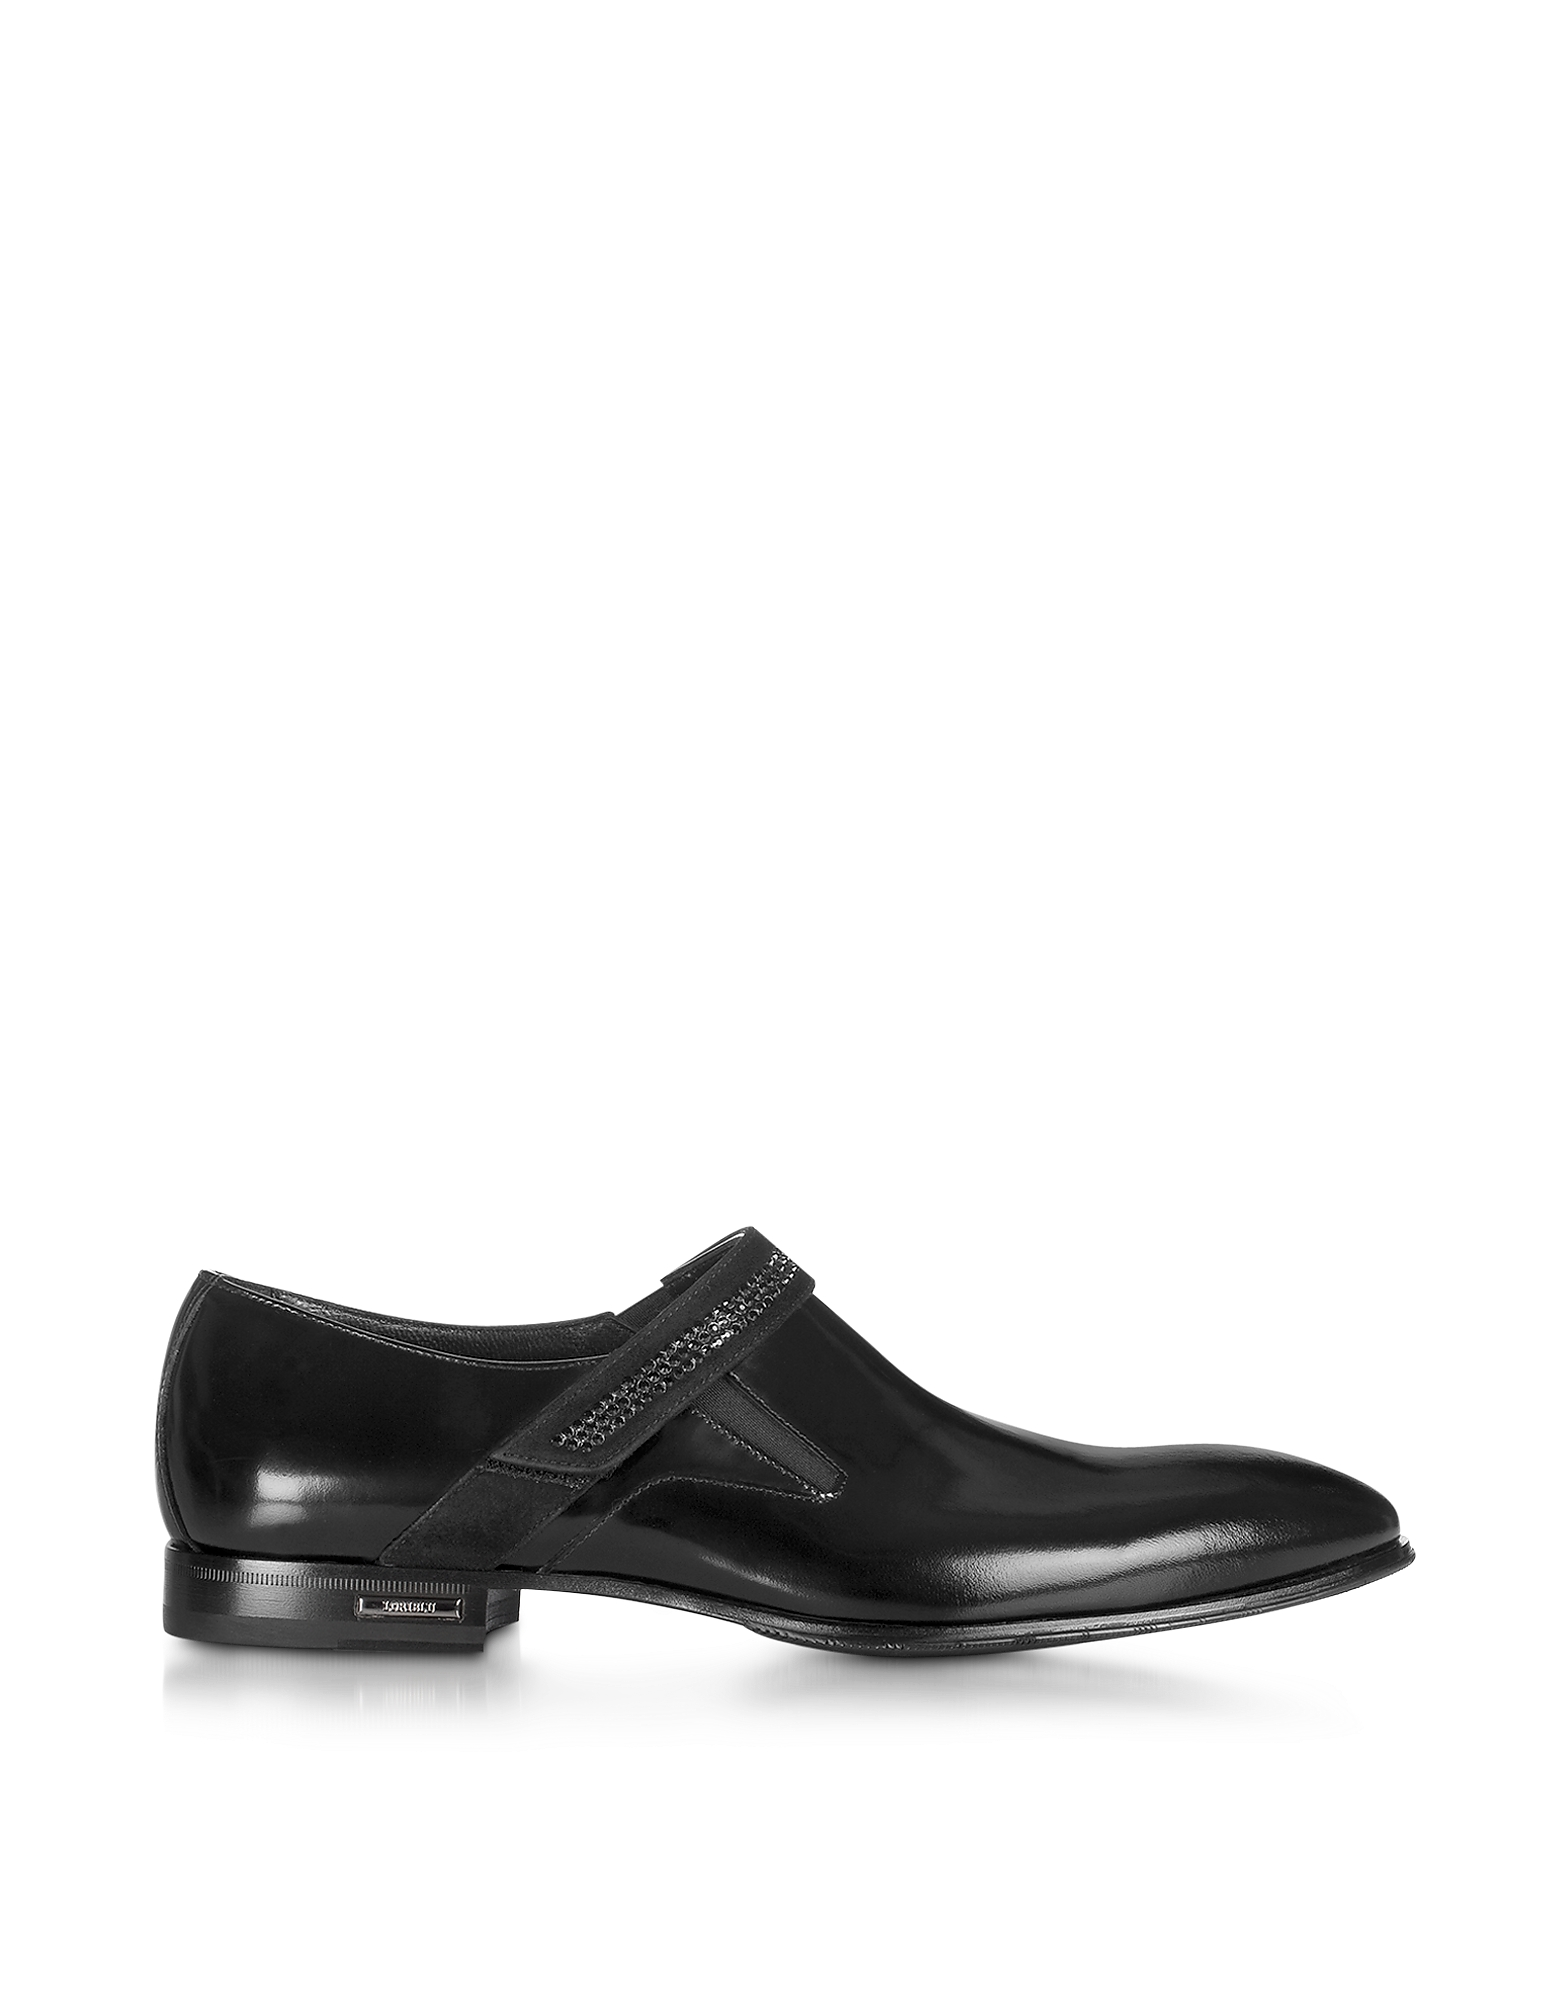 Loriblu Shoes, Black Leather Loafer w/Suede Buckle Strap